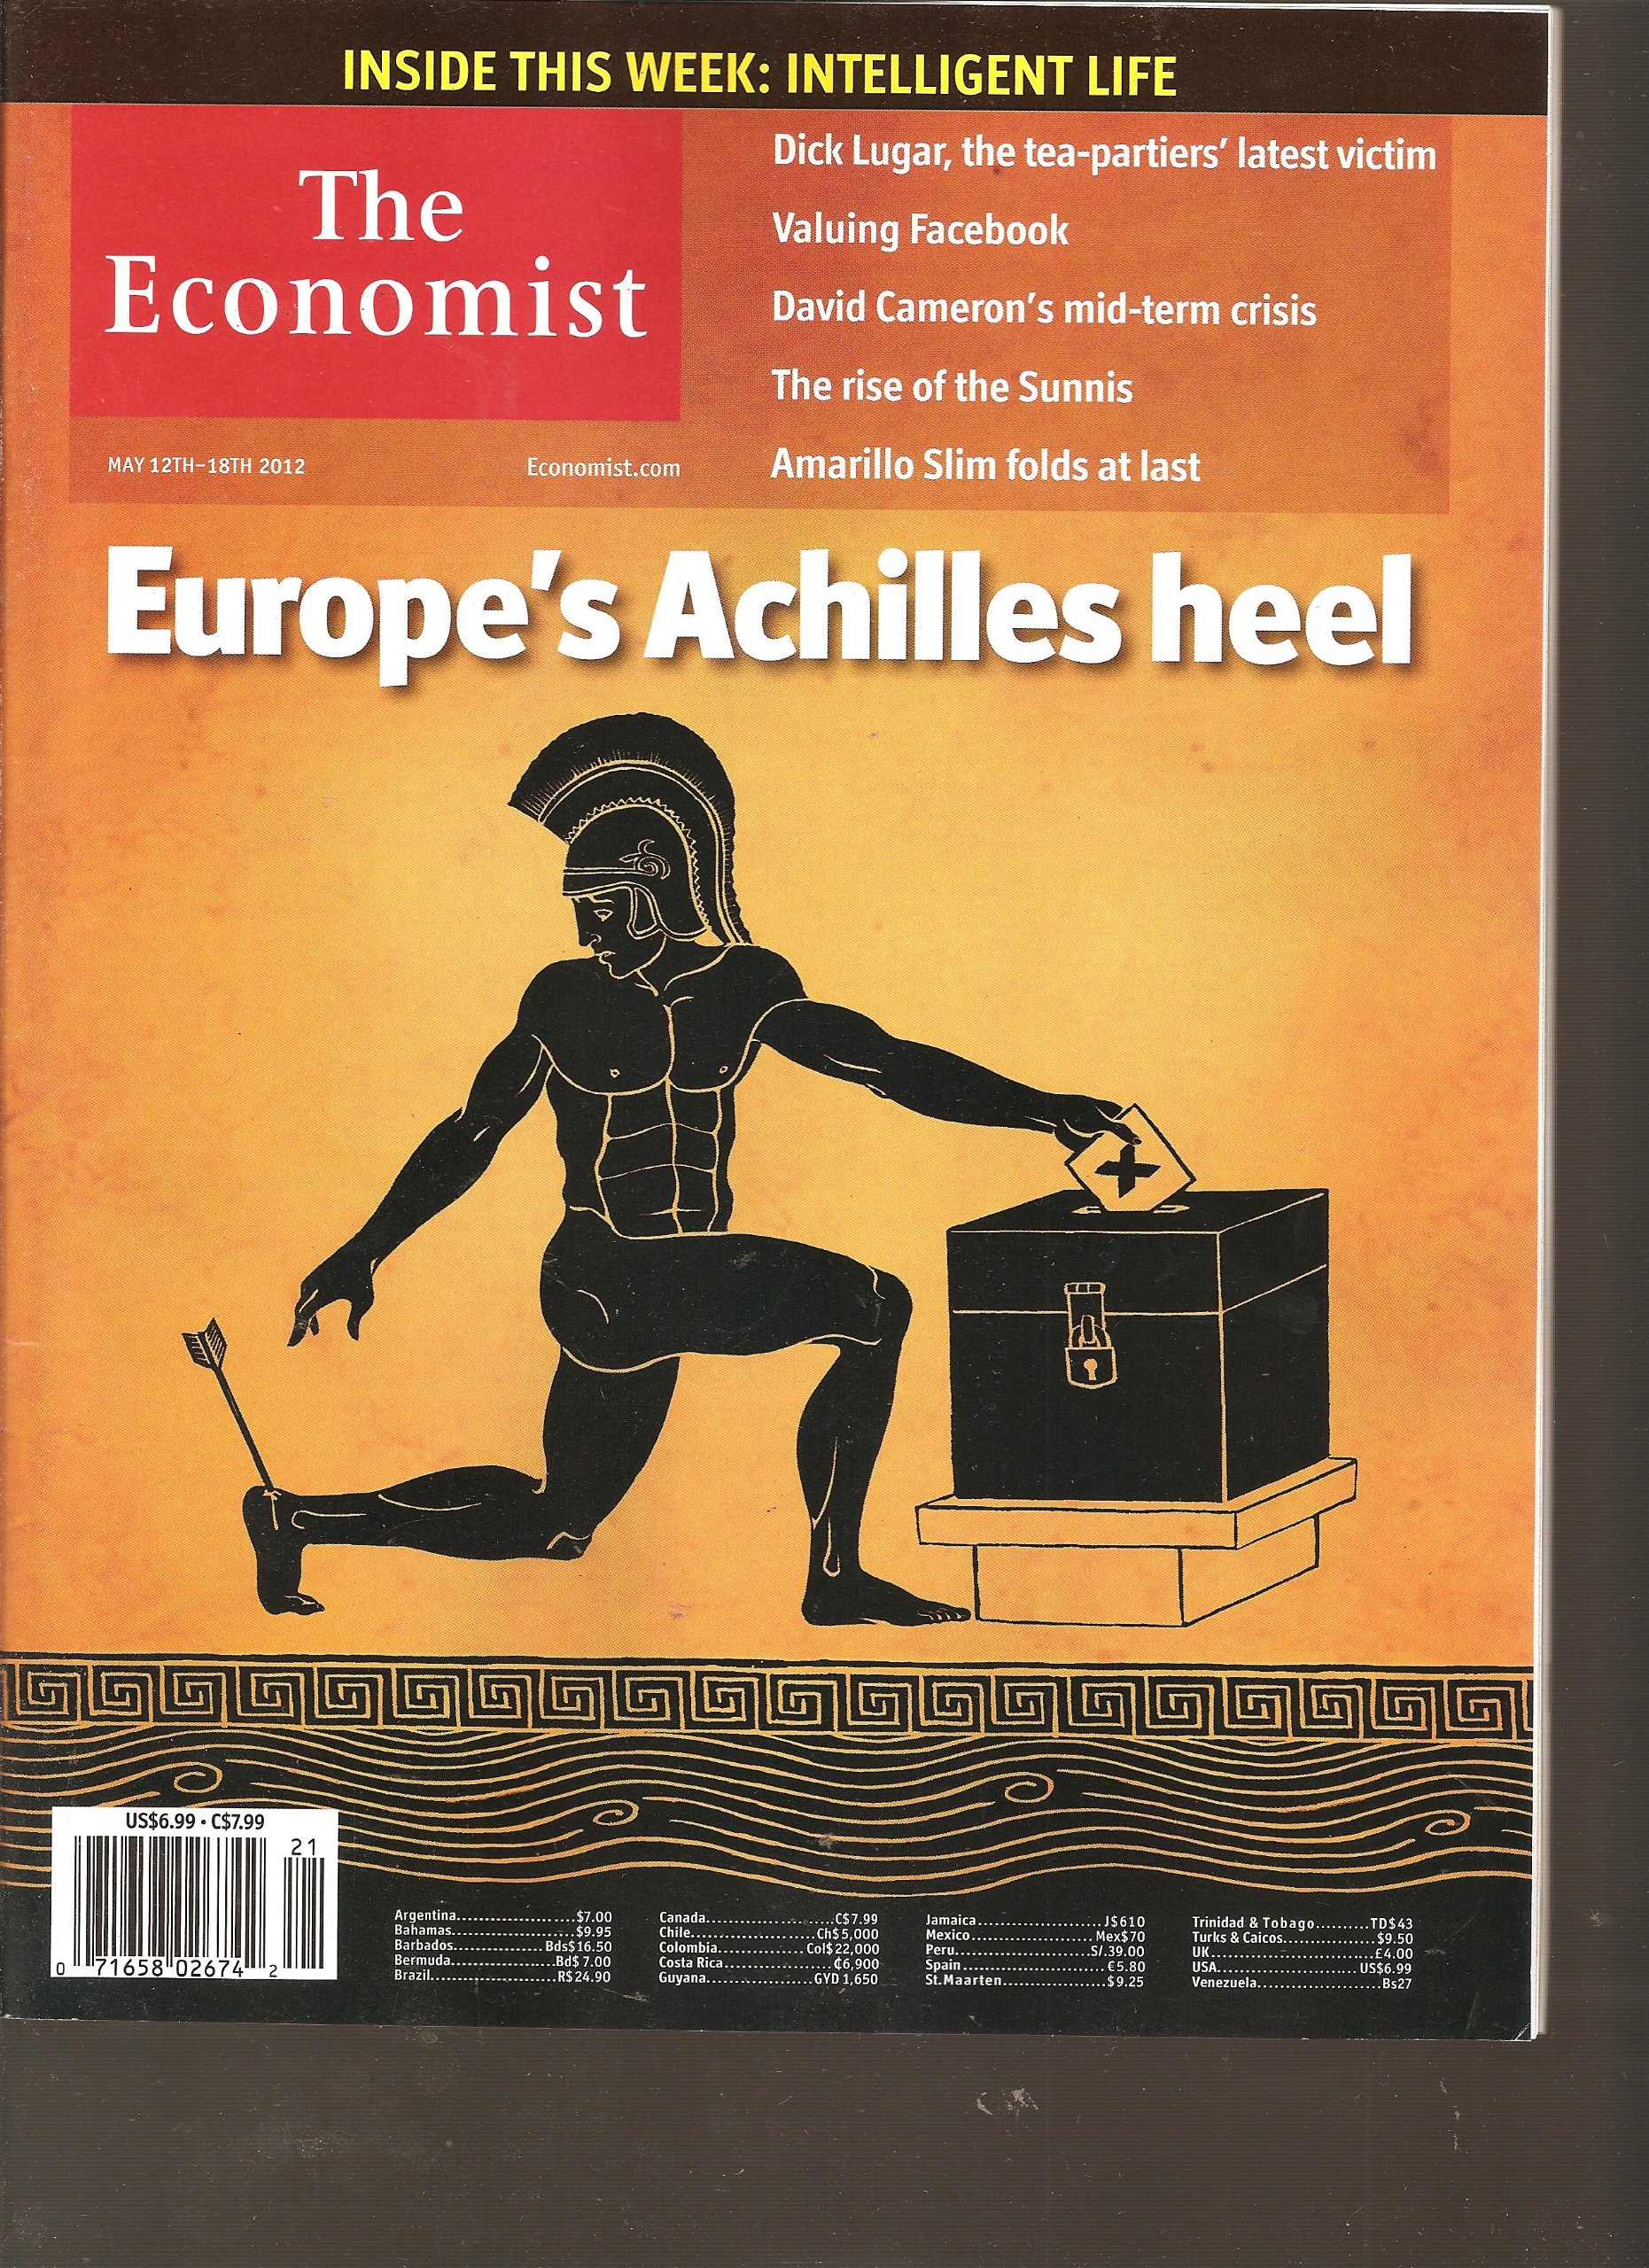 The Economist Magazine (May 12th-18th 2012) Single Issue Magazine – 2012